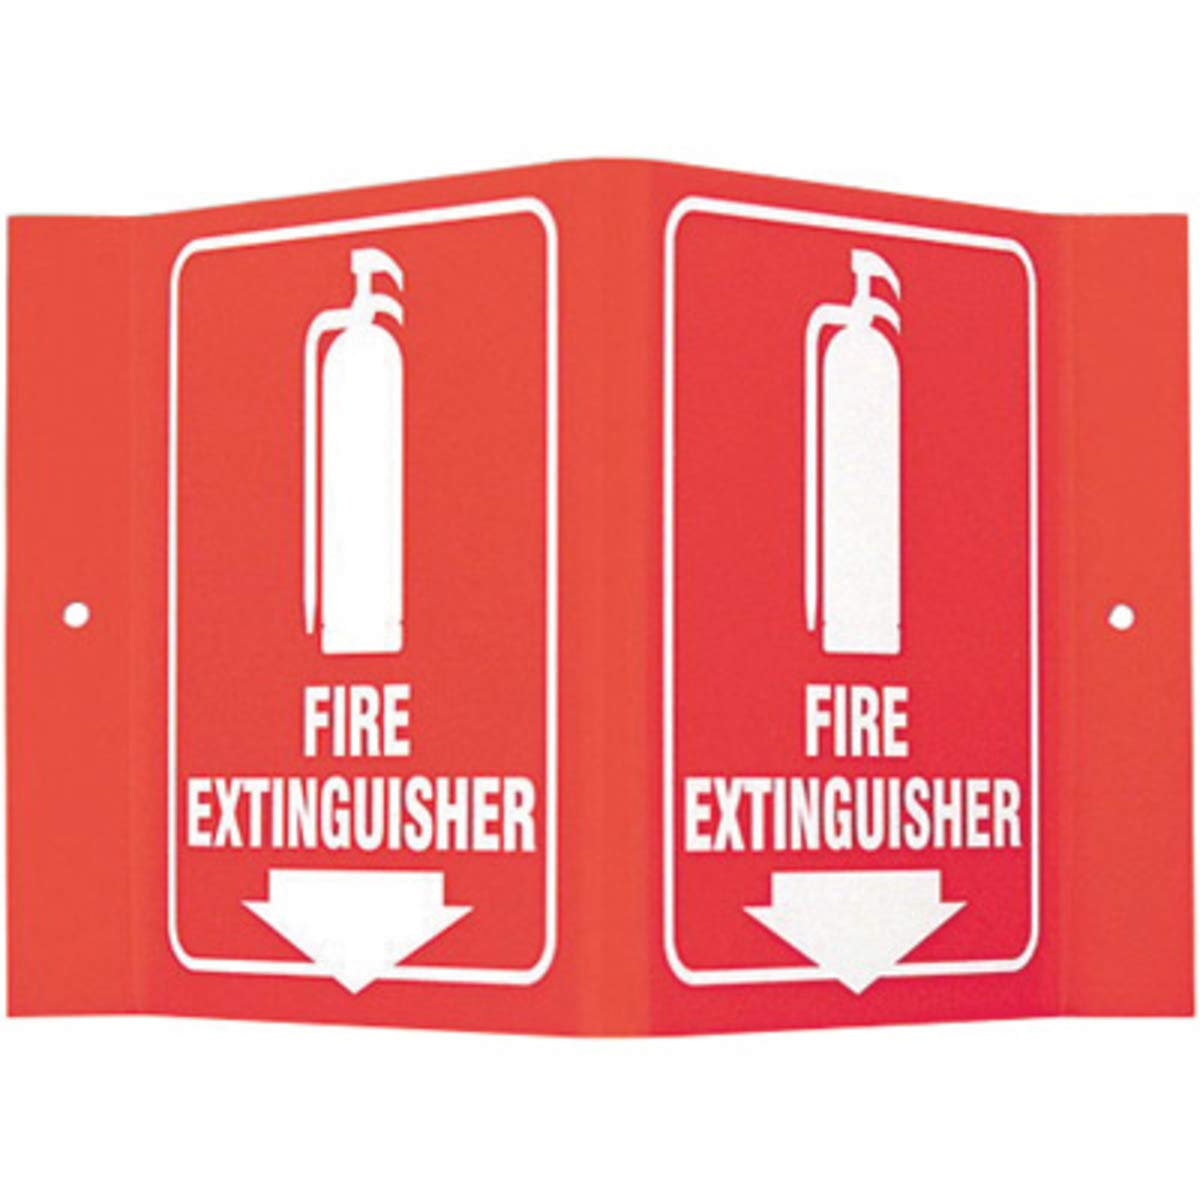 Brady 6'' X 8'' X 4'' White On Red Acrylic Safety Sign''Fire Extinguisher''